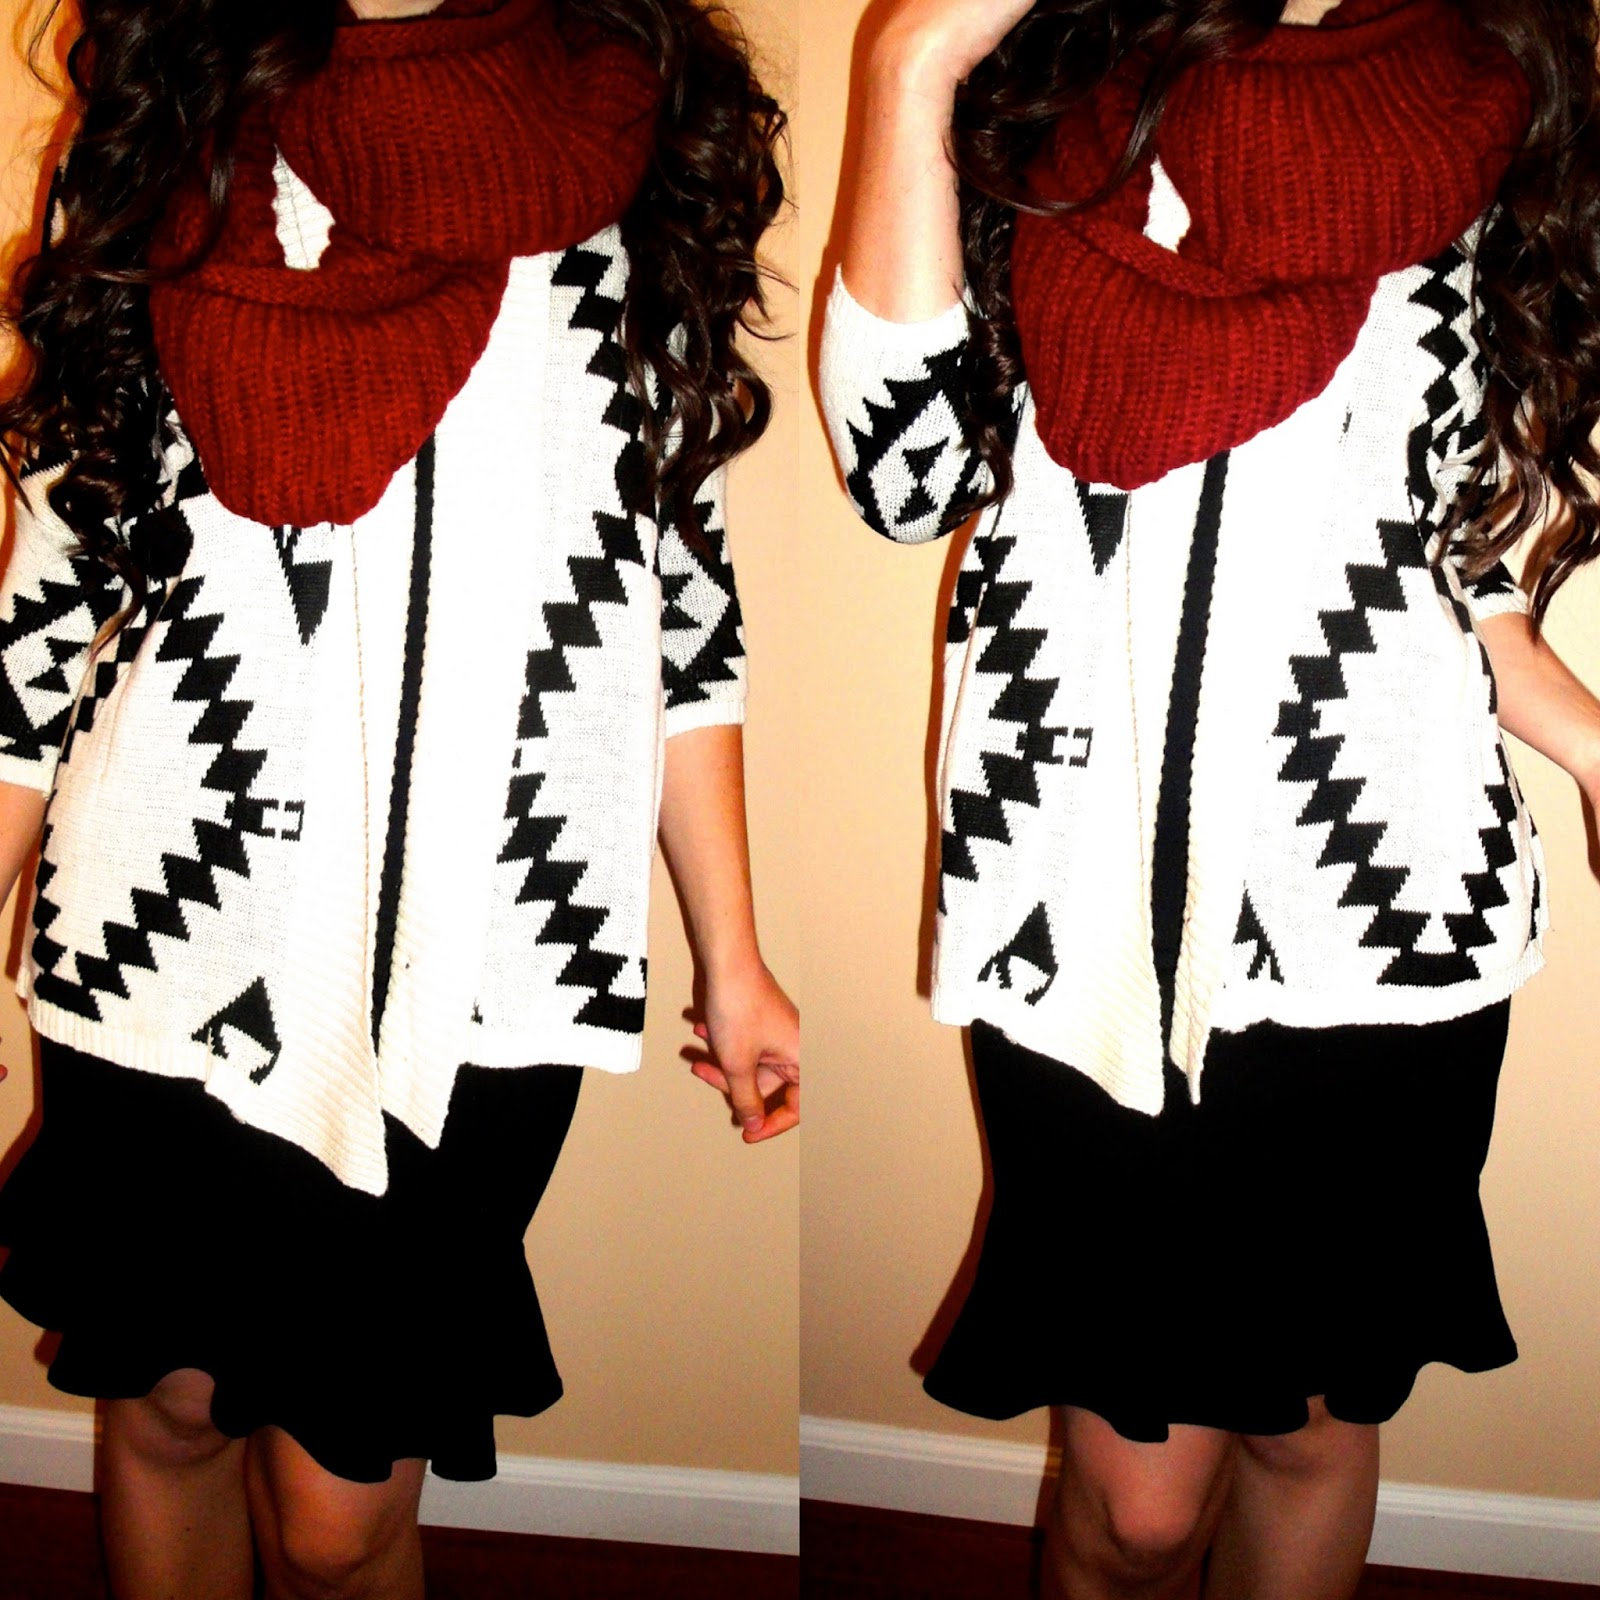 3 ways to wear aztec print, 3 ways to wear cardigans, 3 ways to wear cute cardigans for fall and winter, aztec cardigans, fall and winter ideas for outfits,